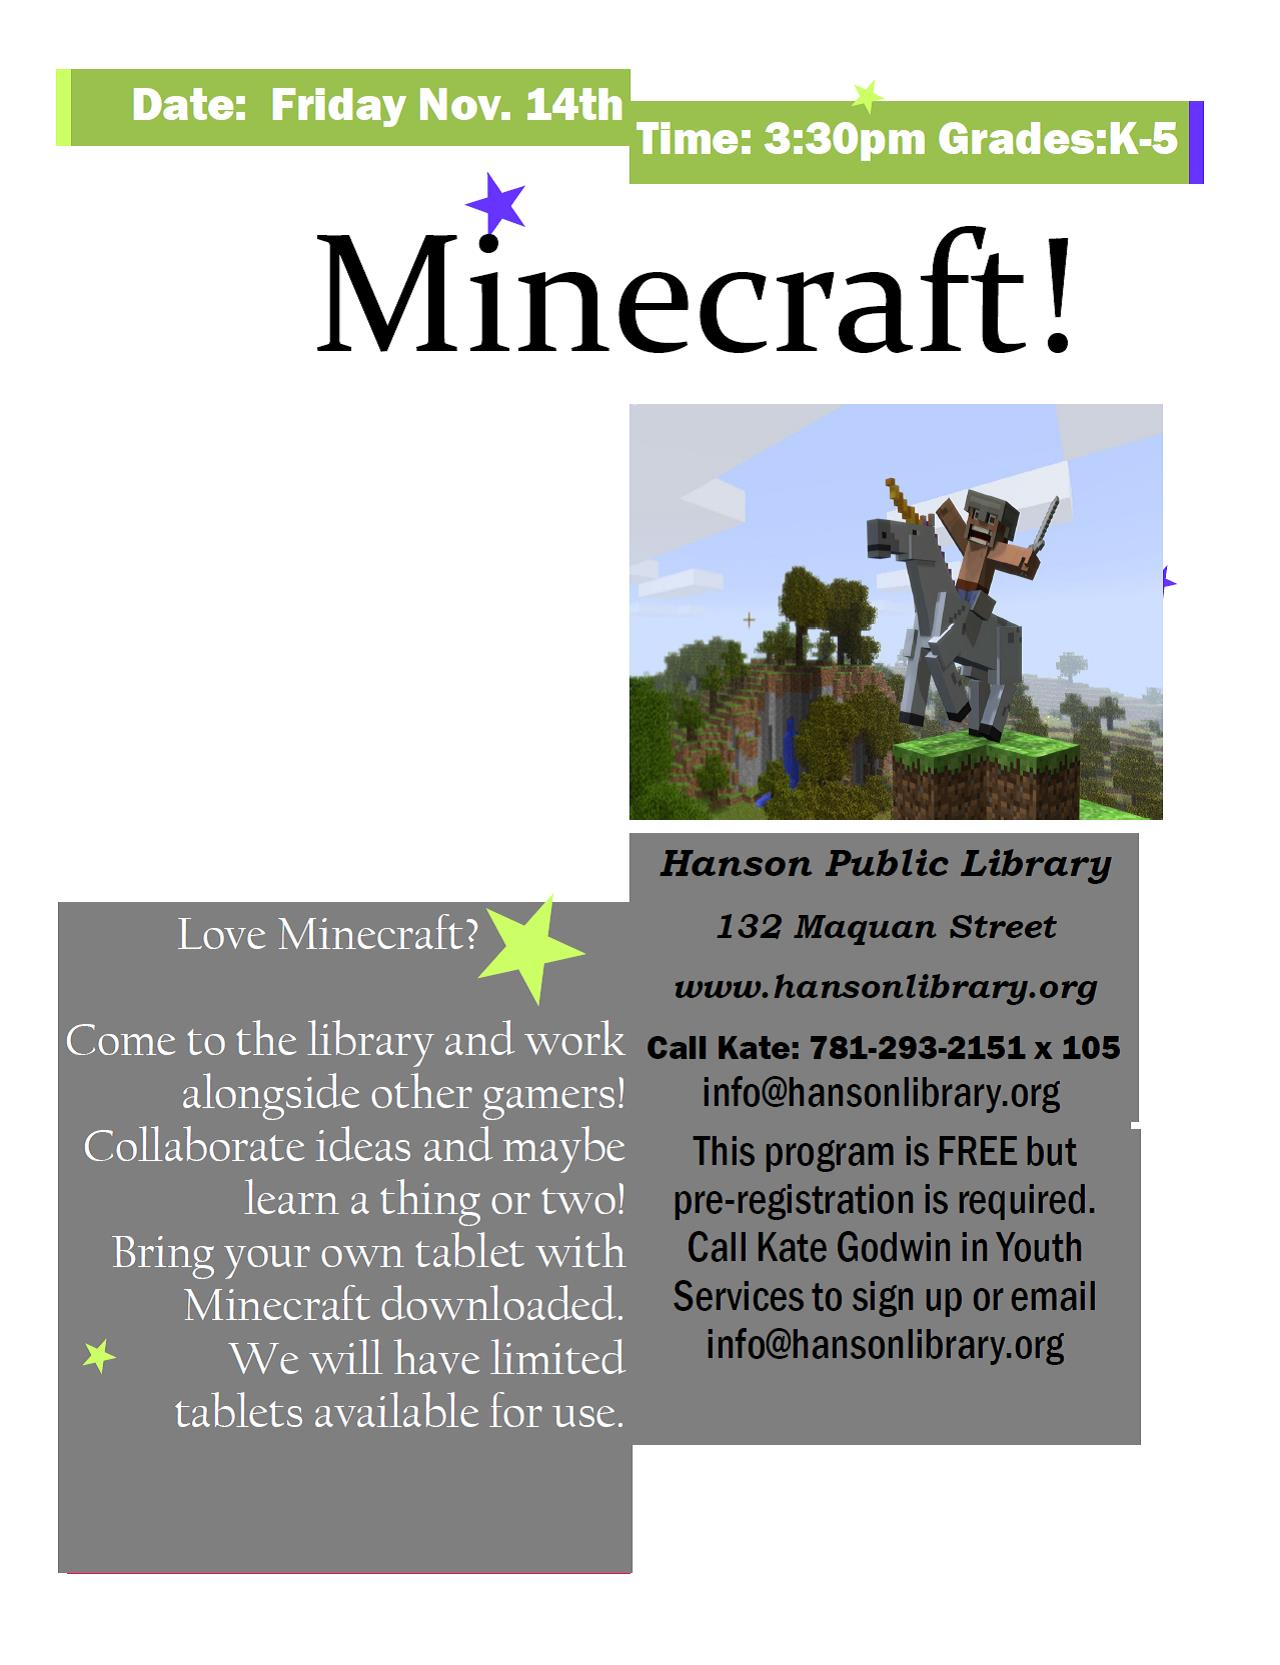 Minecraft program at the library